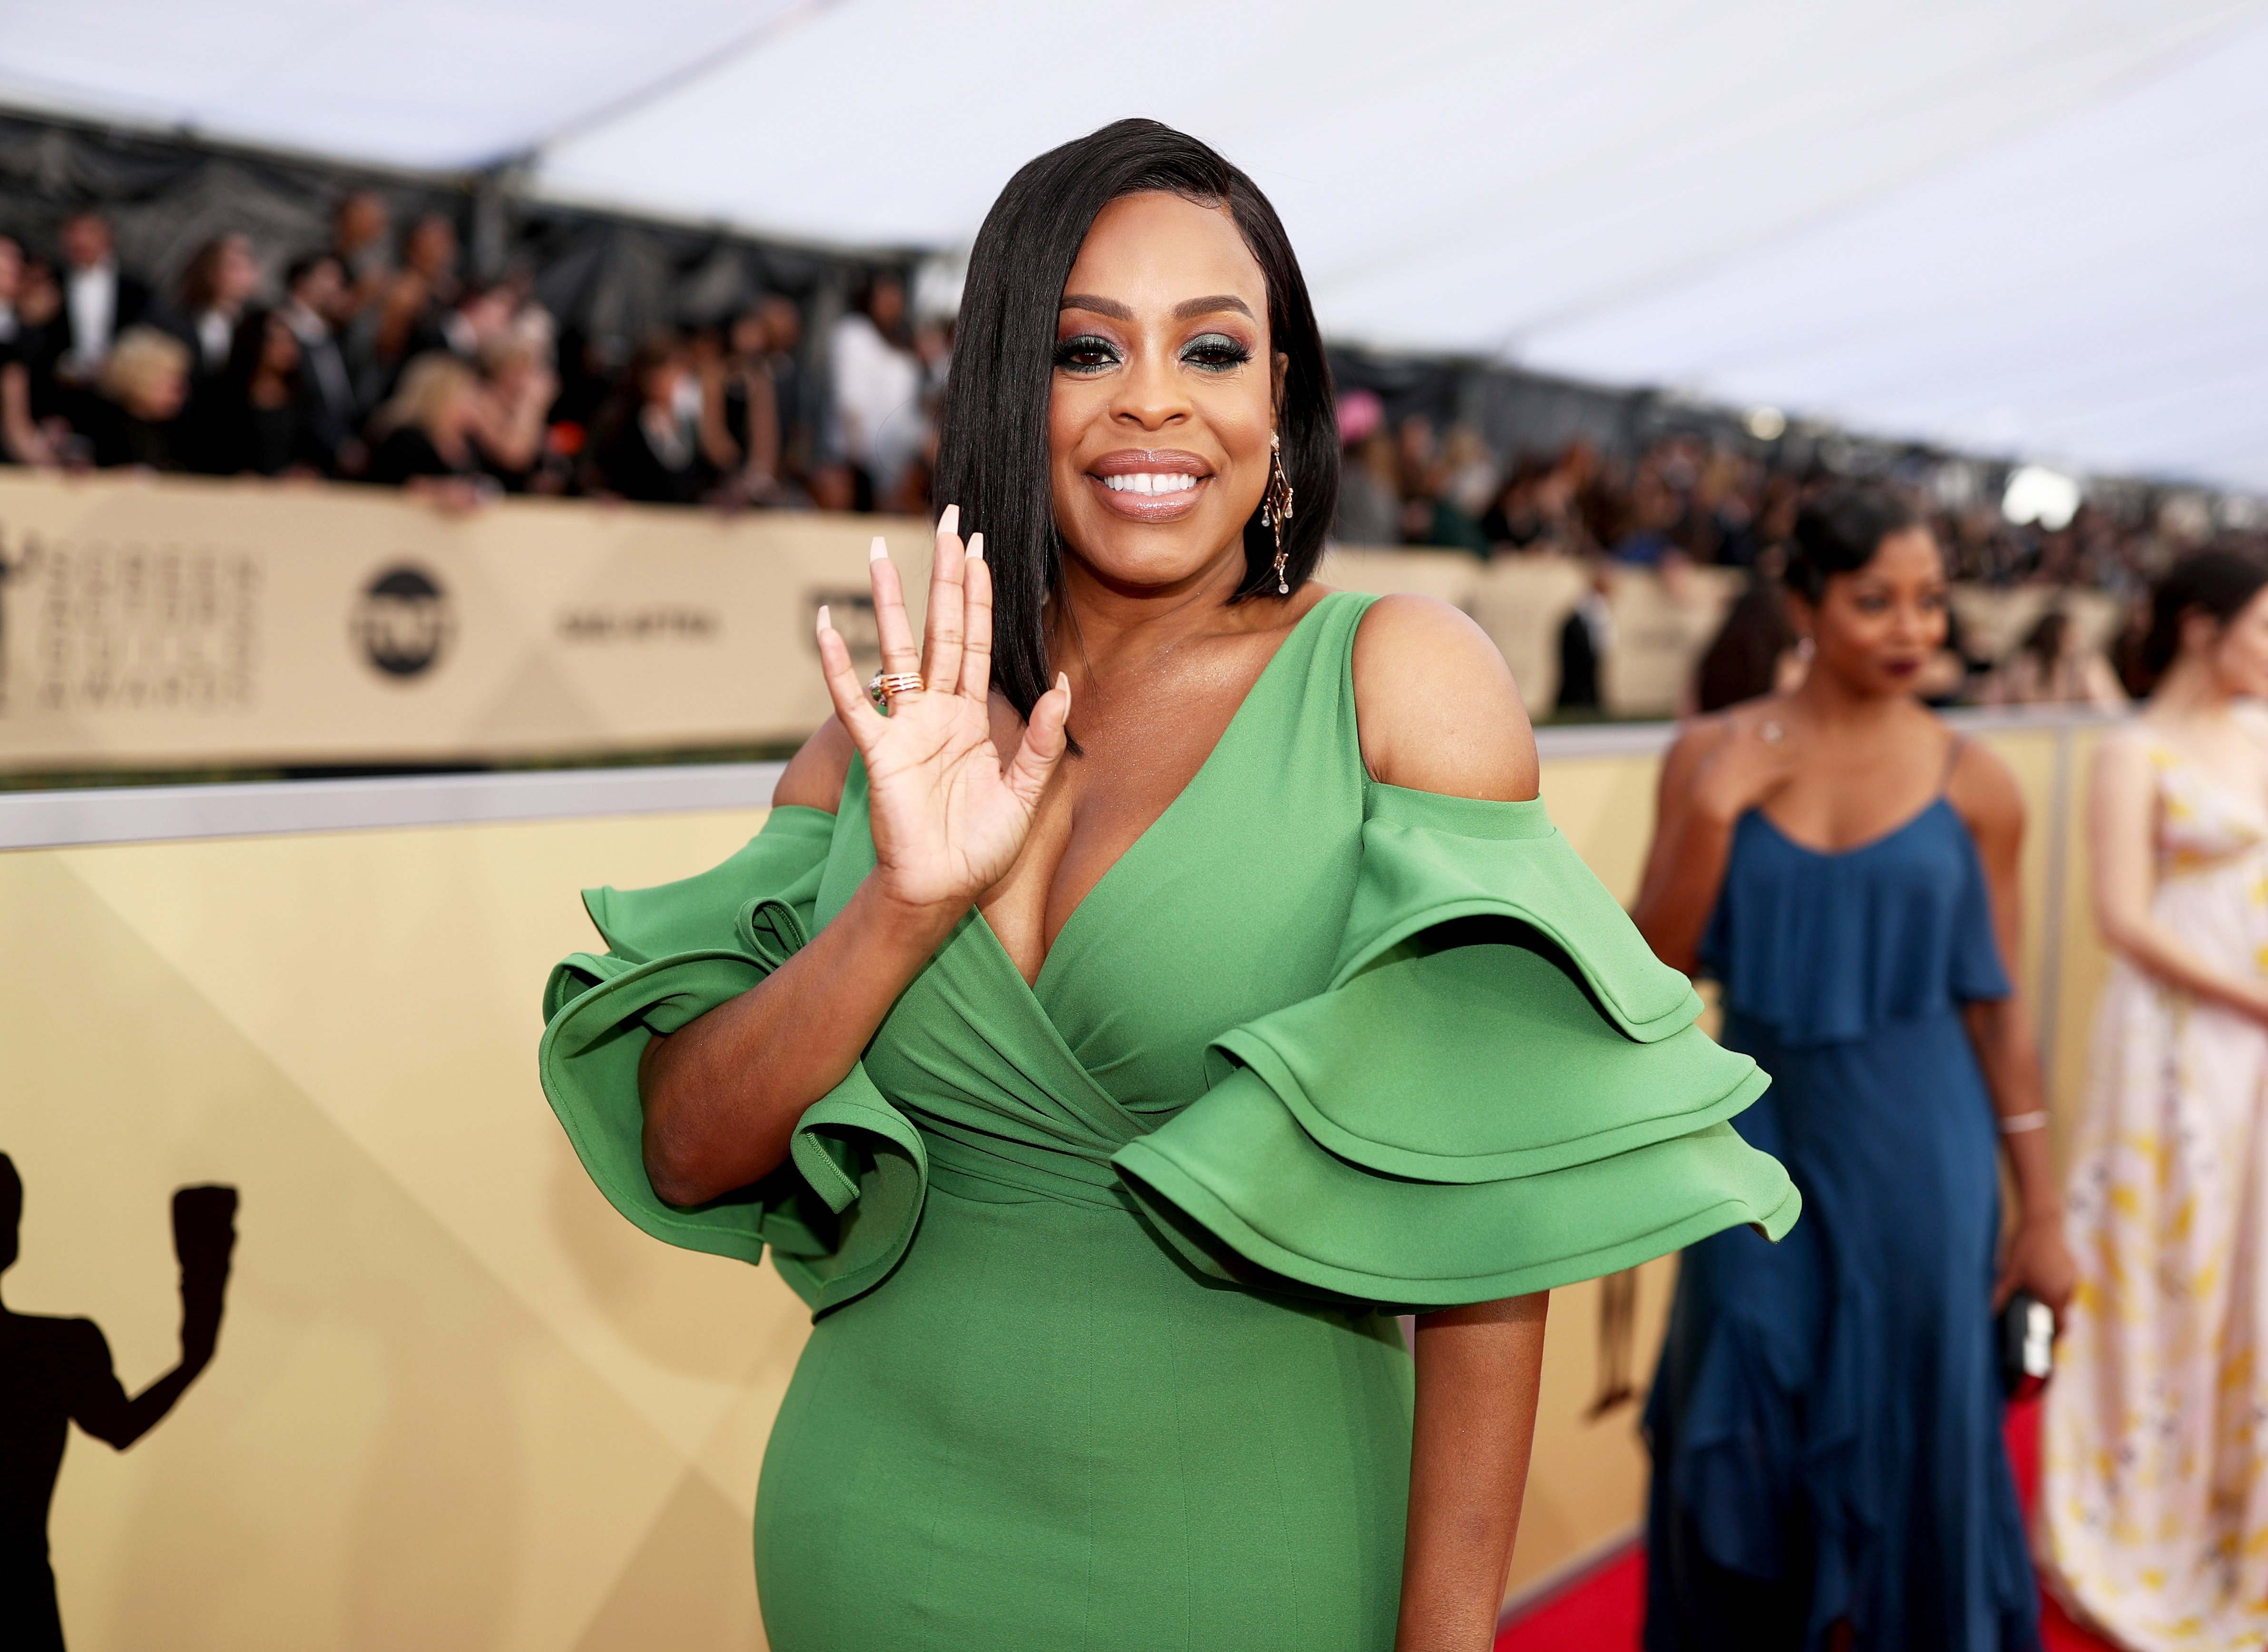 Niecy Nash at the 24th Annual Screen Actors Guild Awards at The Shrine Auditorium on January 21, 2018 in Los Angeles, California. | Source: Getty Images